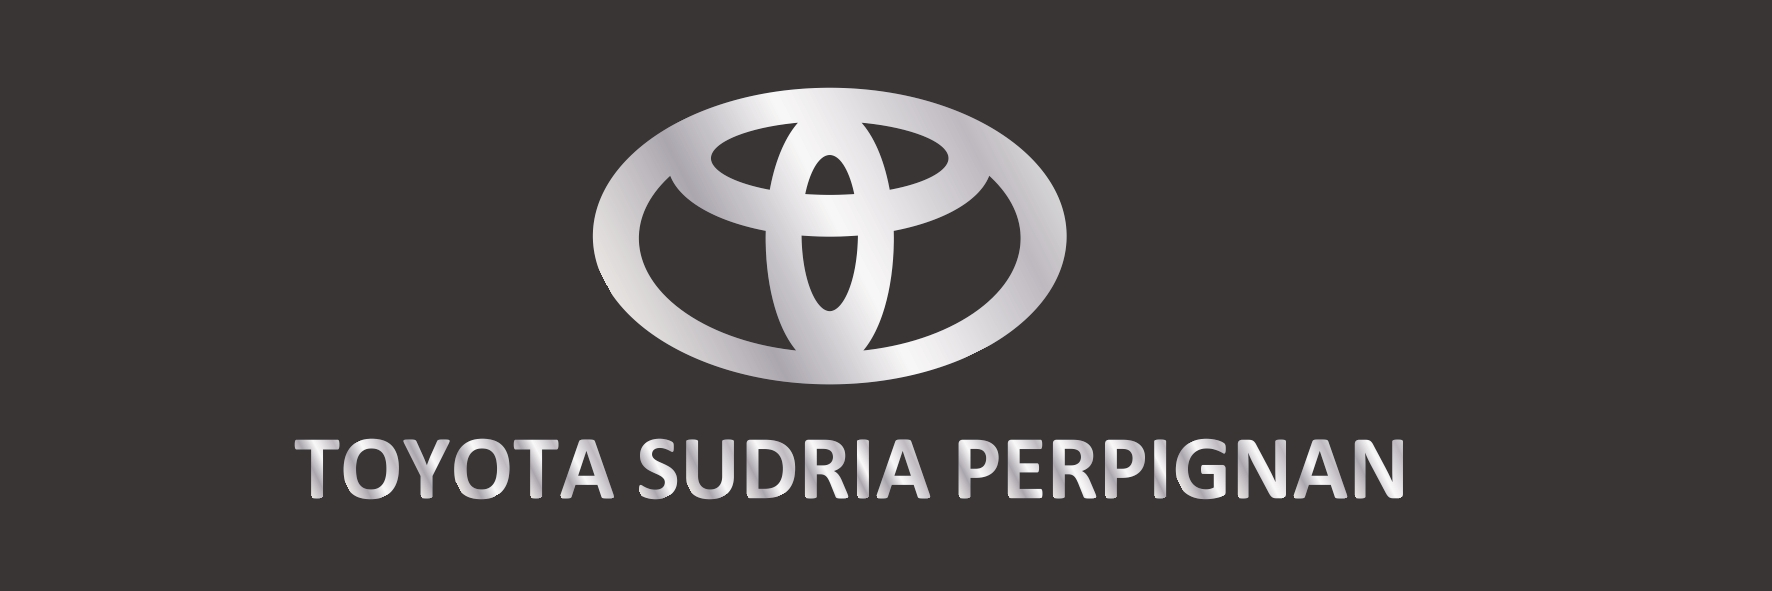 http://usepmm.fr/wp-content/uploads/2021/03/Toyota-Sudria-gris_pages-to-jpg-0001.jpg